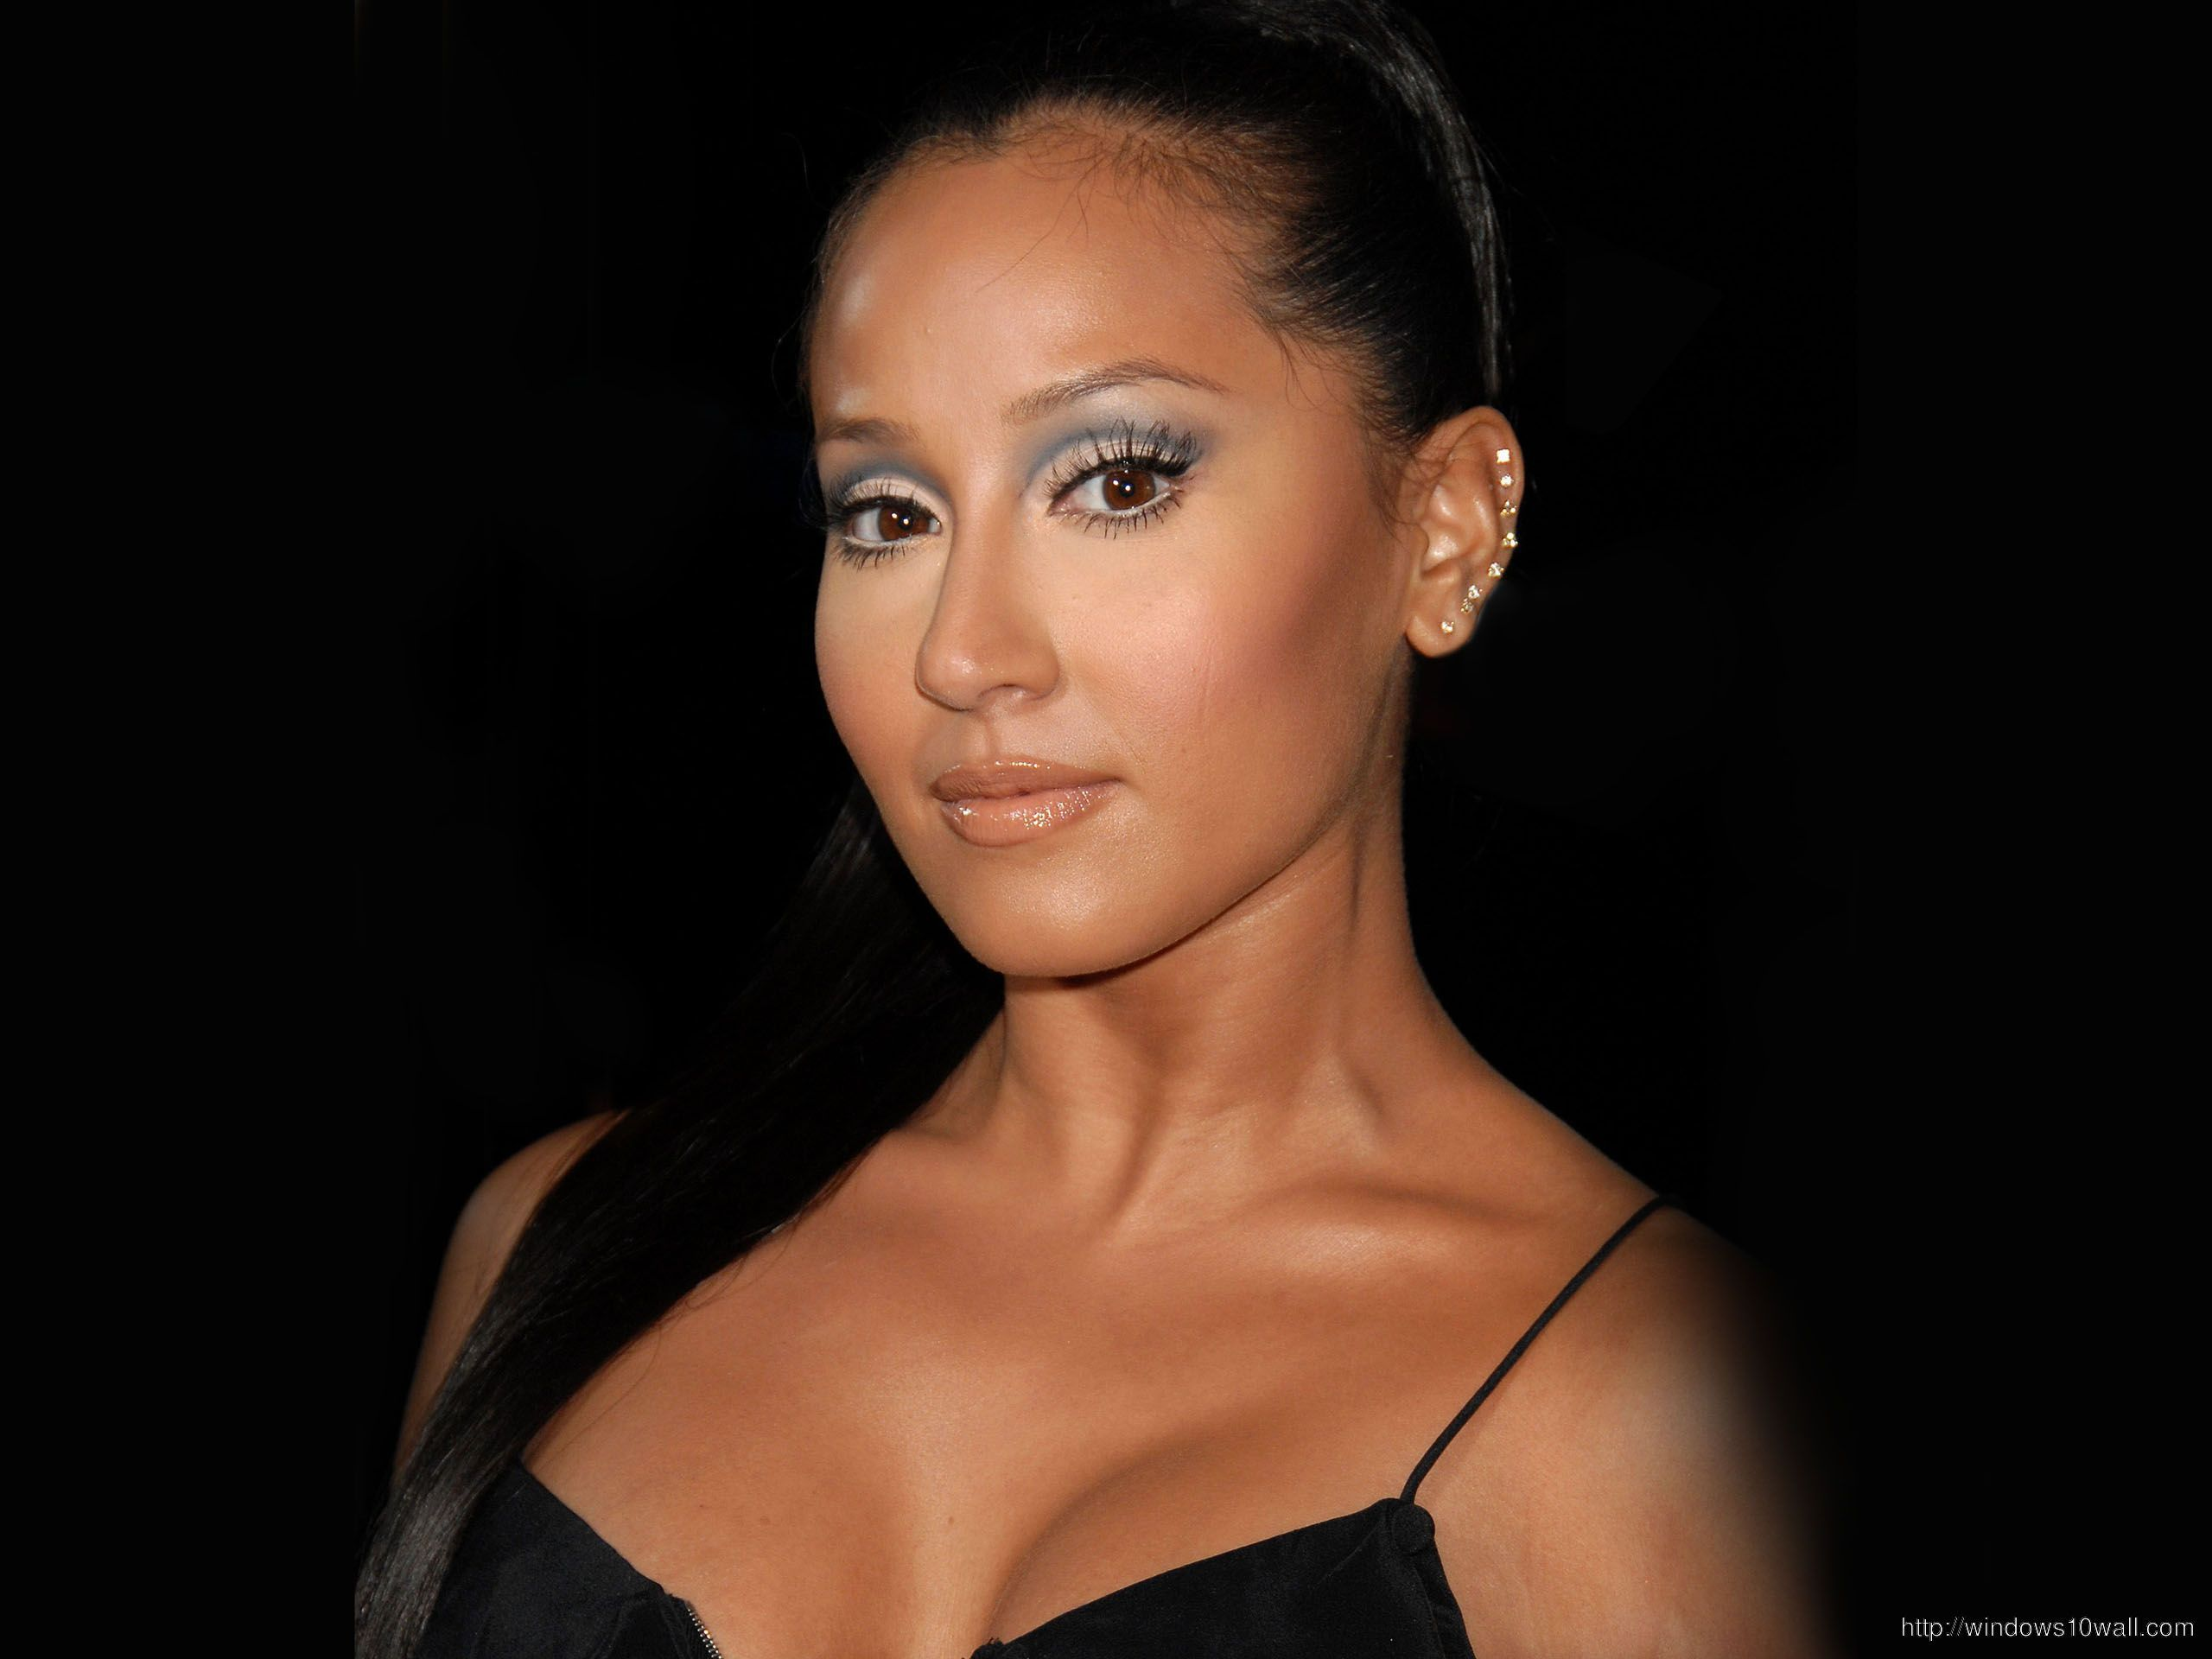 Adrienne bailon nude have removed